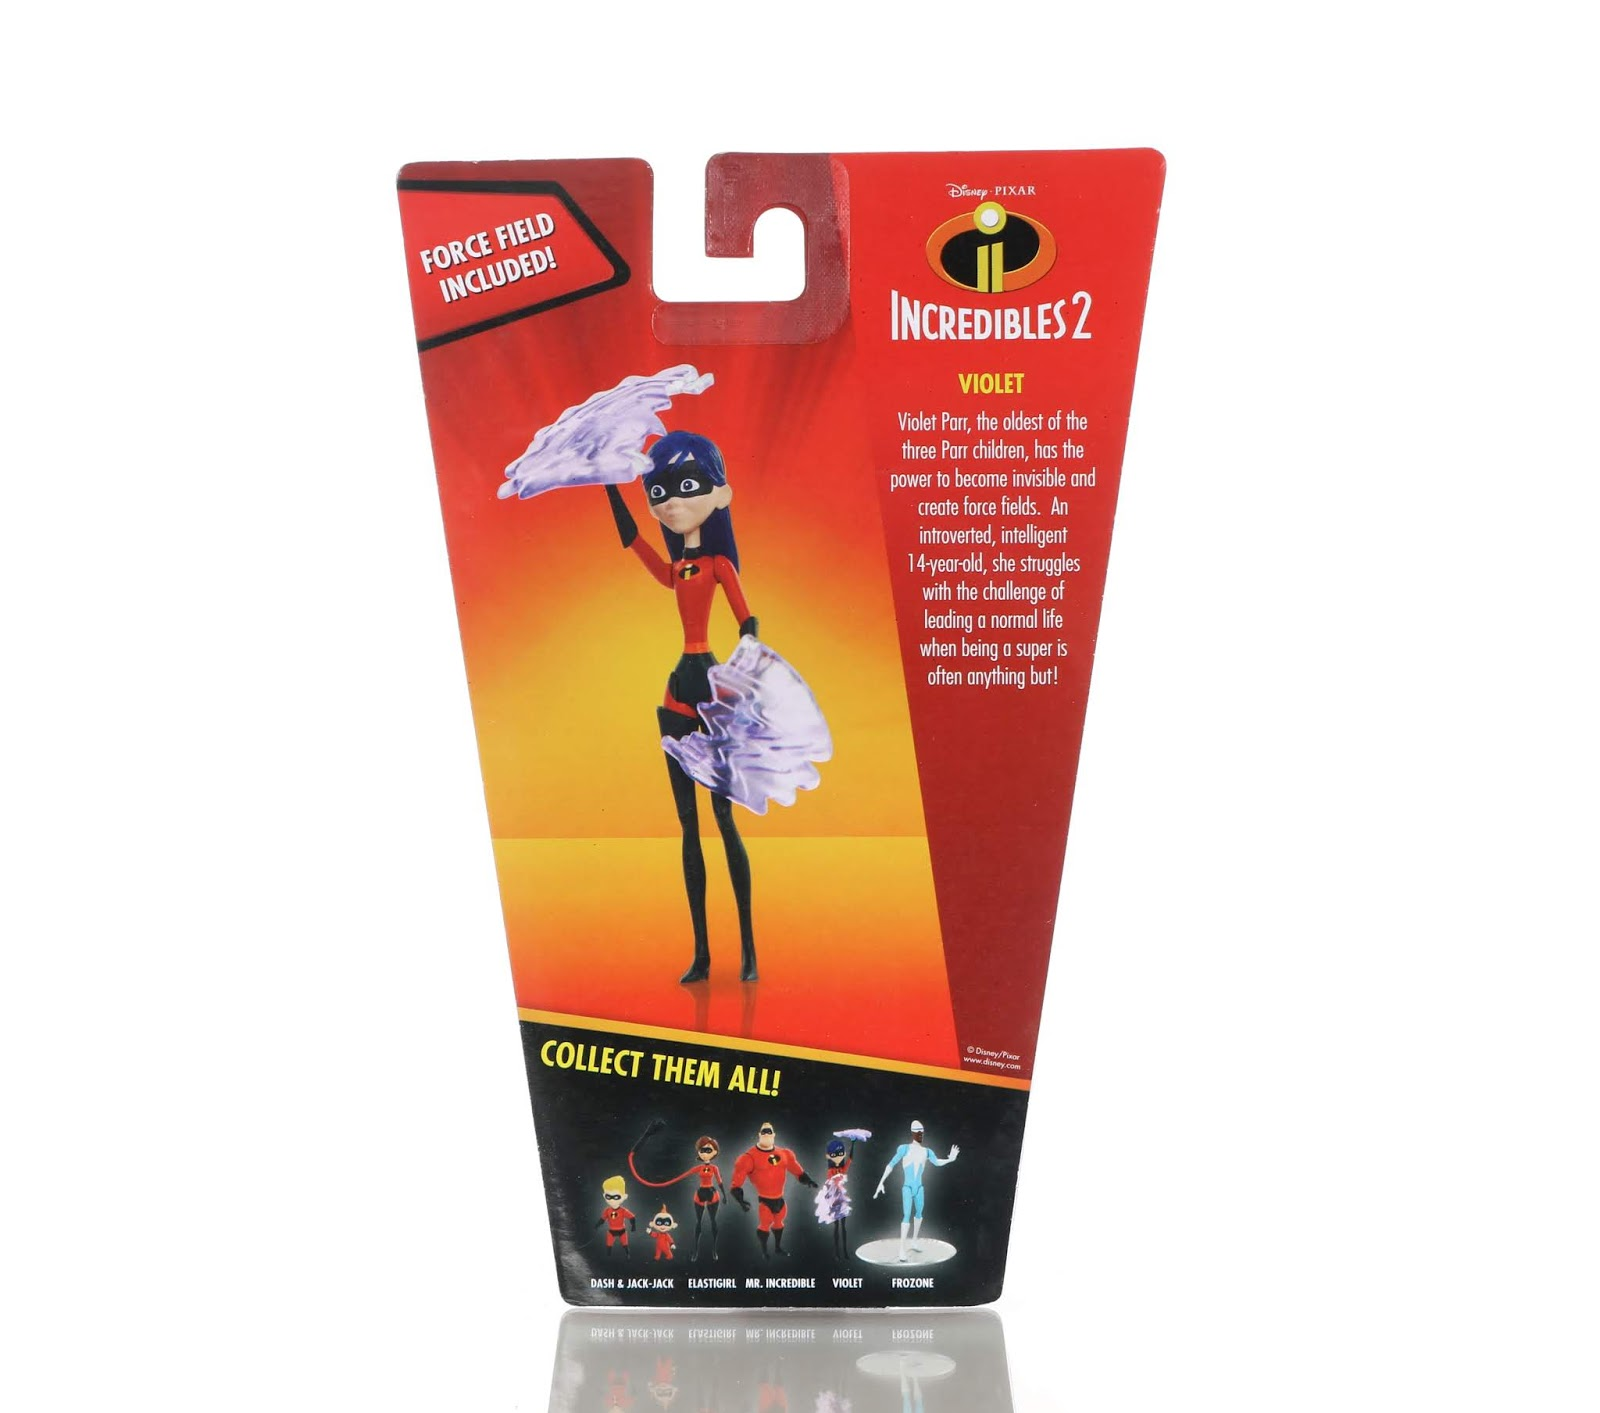 "Incredibles 2 Jakks Pacific 4"" Action Figure Collection Review"